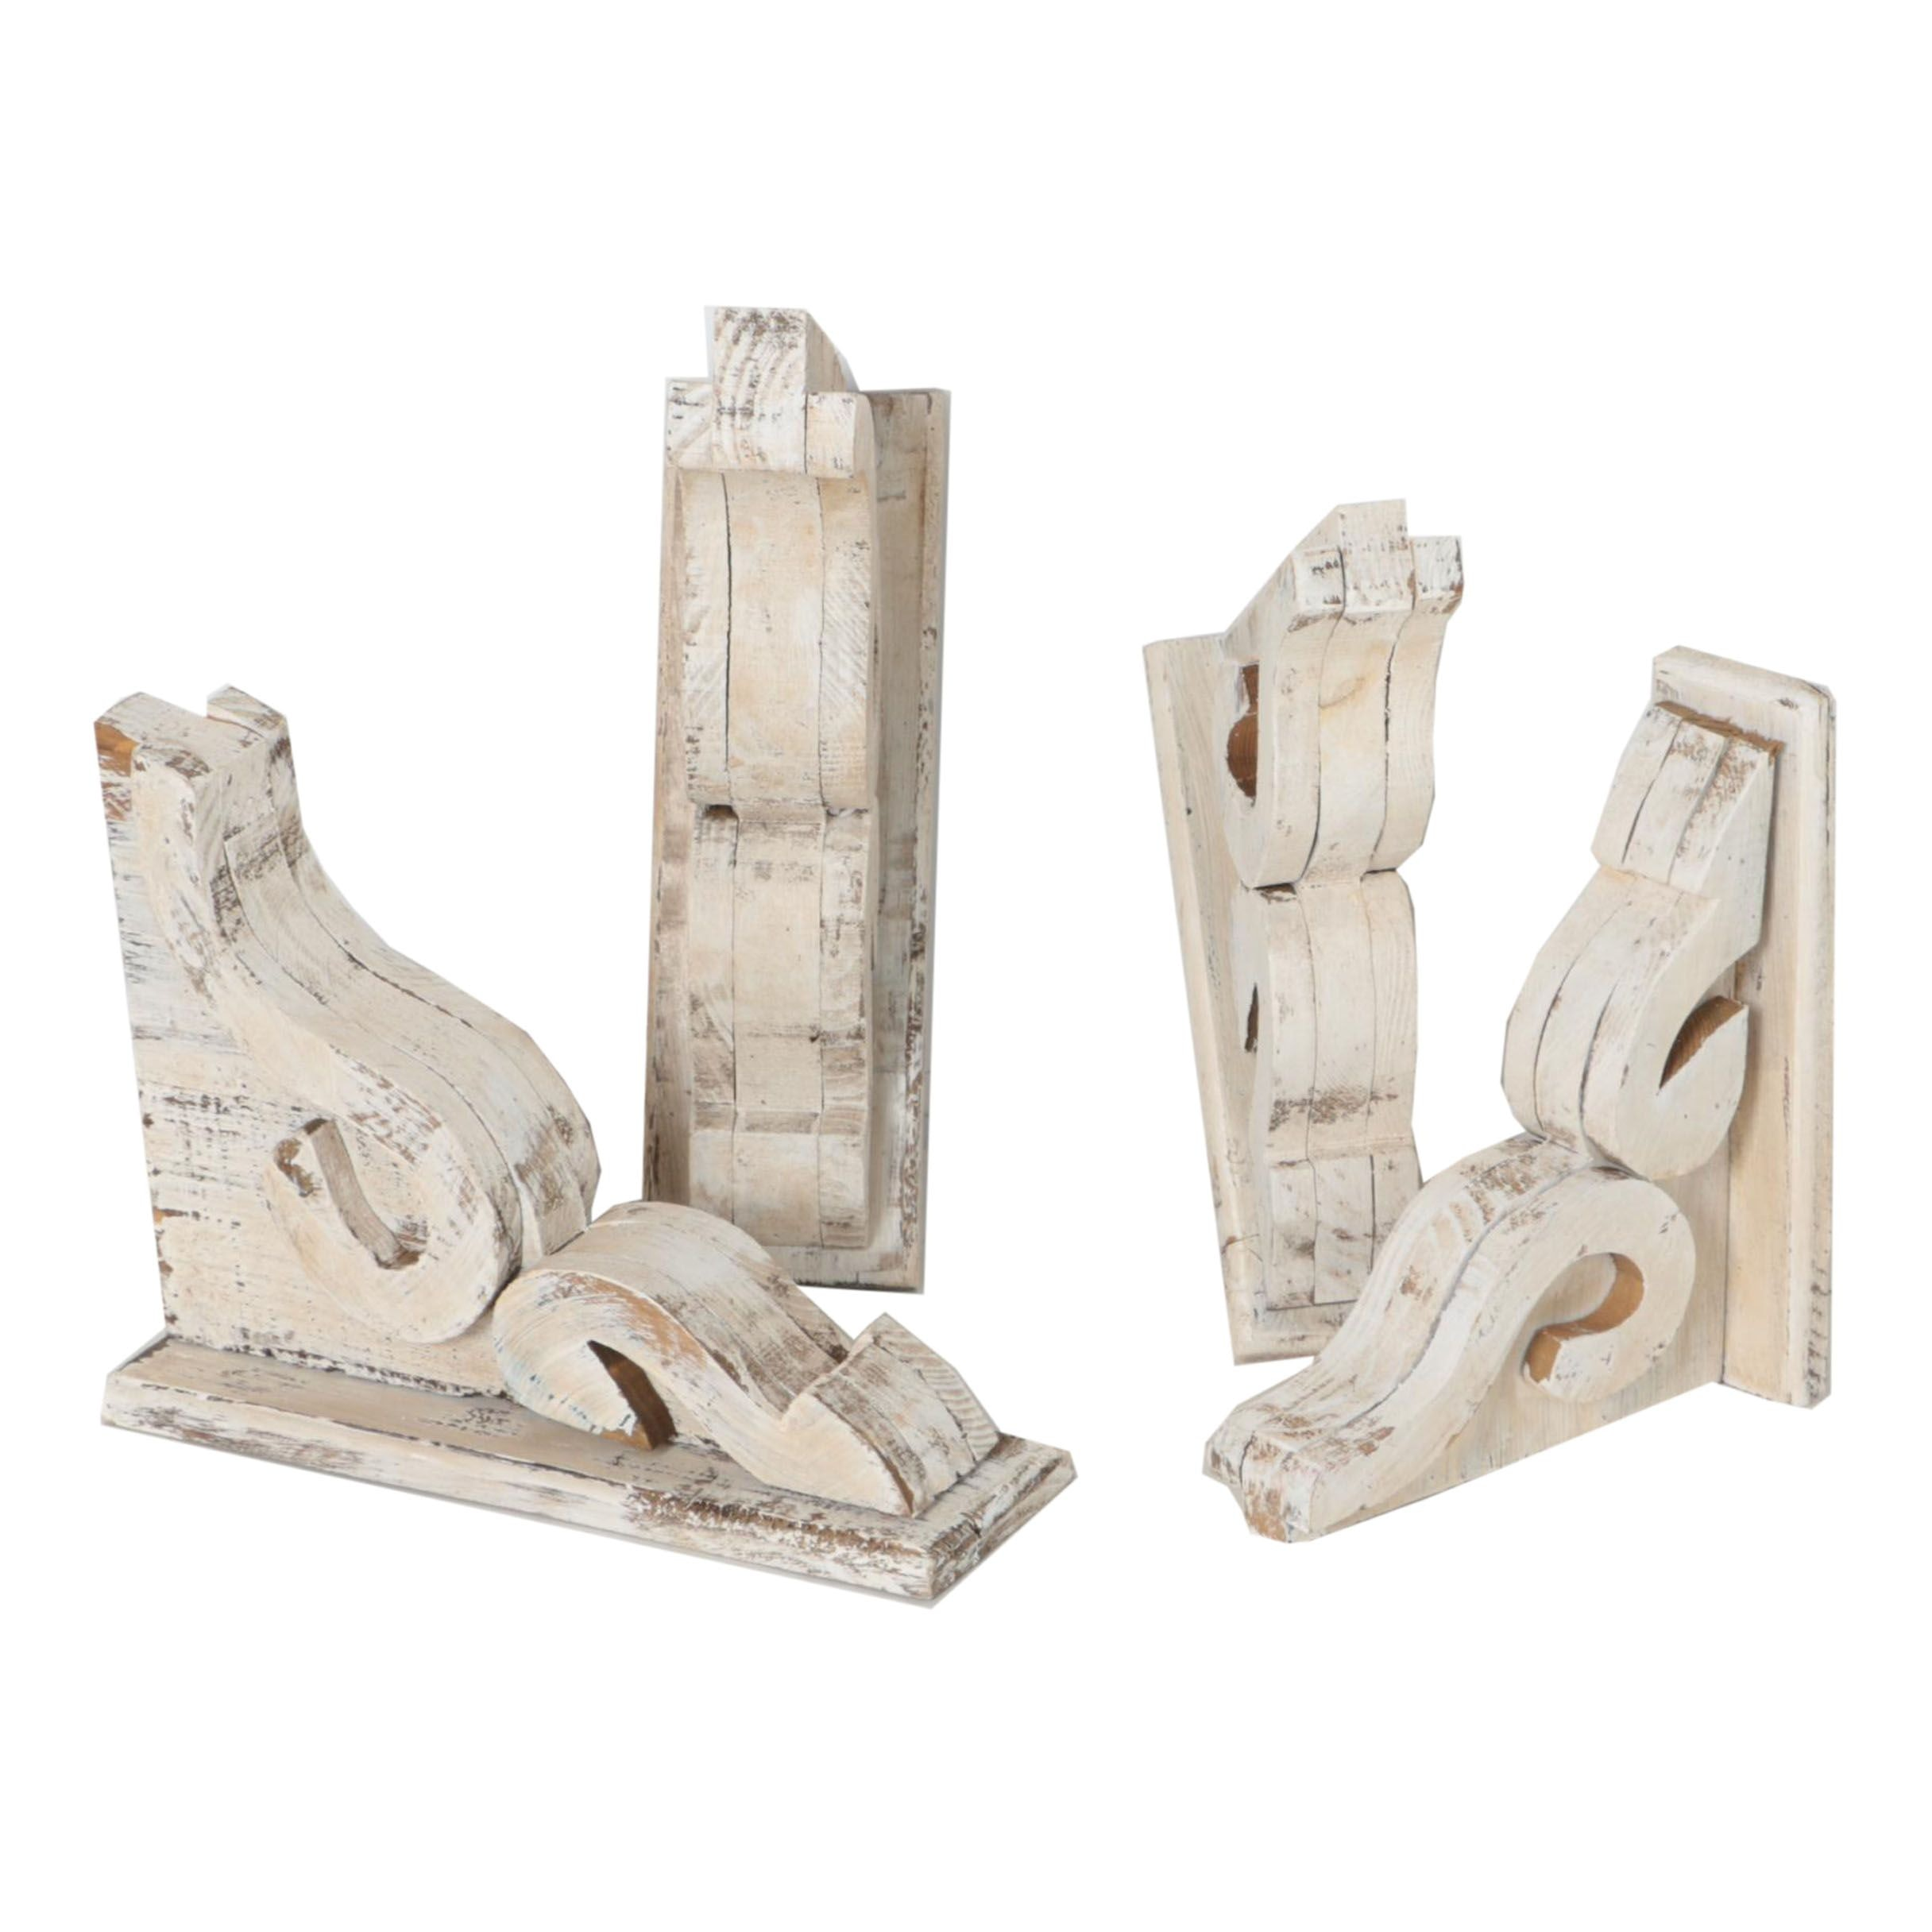 Architectural Corbel Moulding